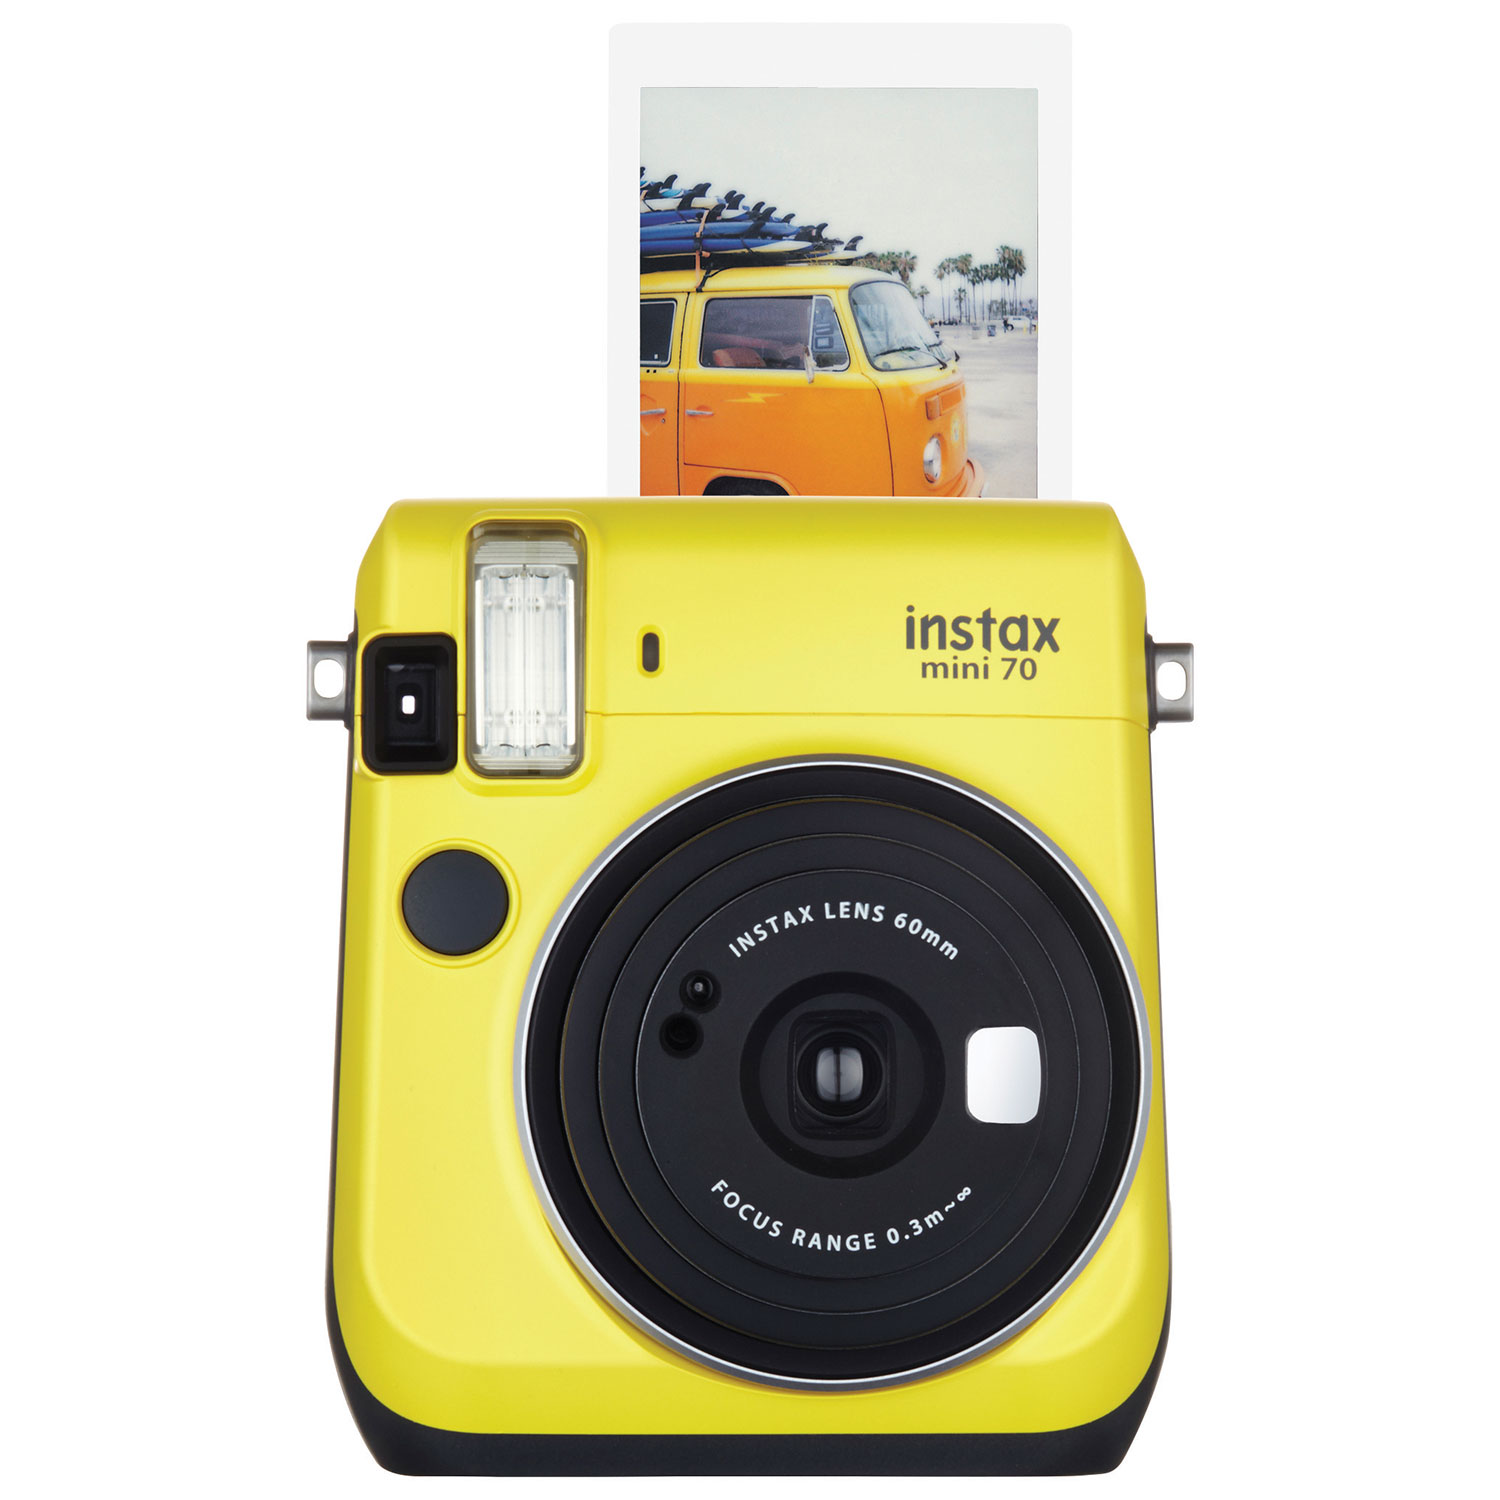 Fujifilm Instax Mini 70 Instant Camera Kit - Yellow : Instant ...